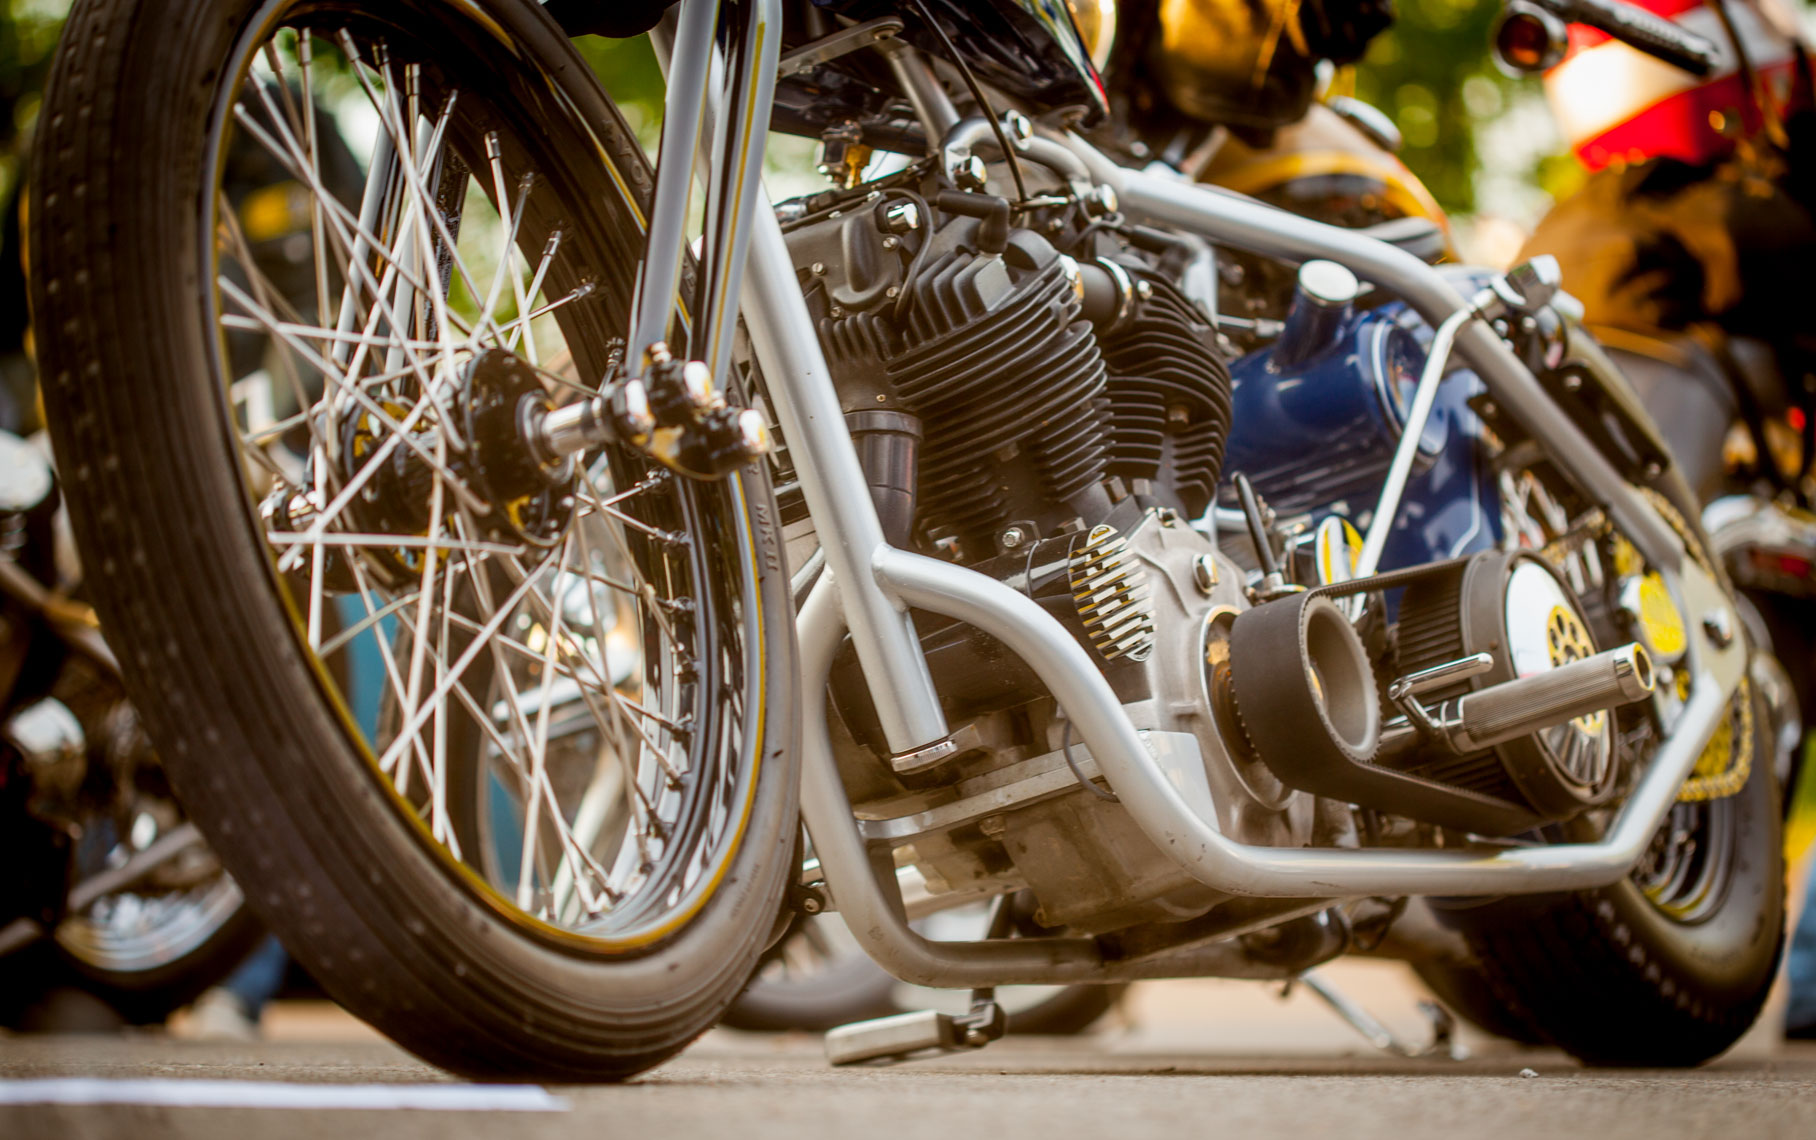 20 Location Photography Custom Motorcycle Builderes Des Moines Iowa FTW Low Rider